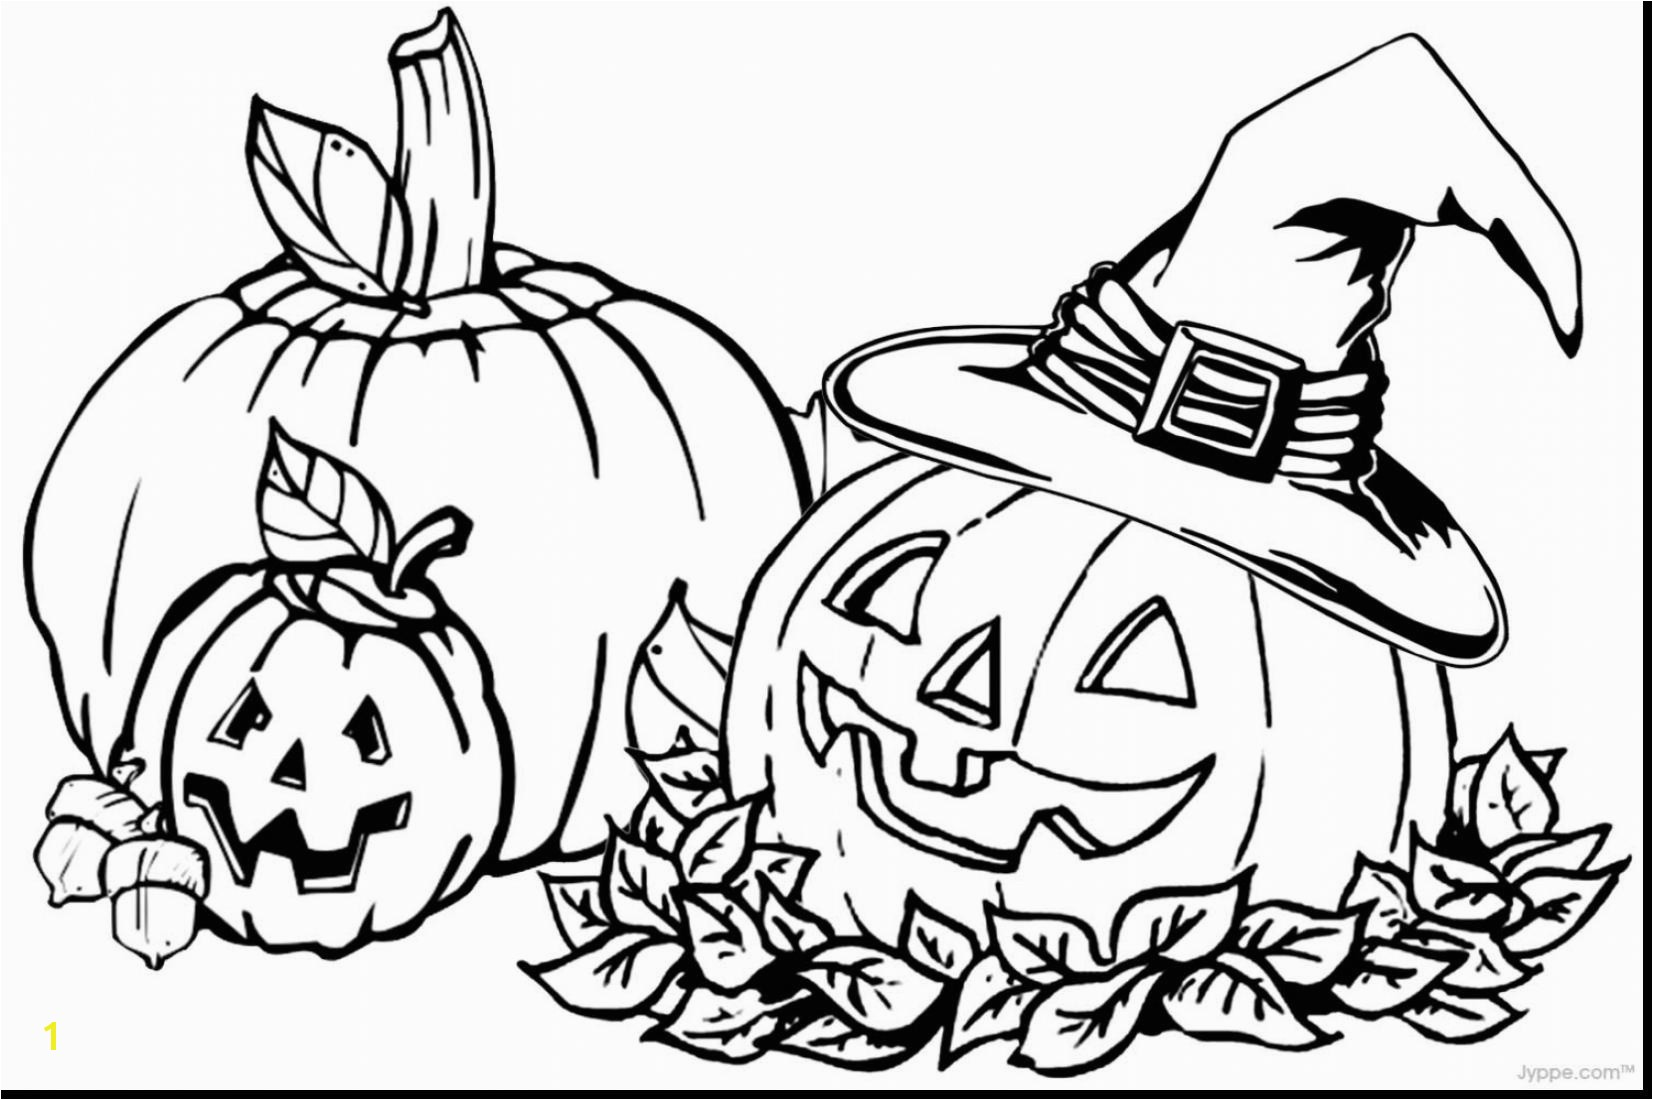 Happy Halloween Pumpkin Coloring Pages Best Luxury Pumpkin Coloring Pages to Print 20 Elegant